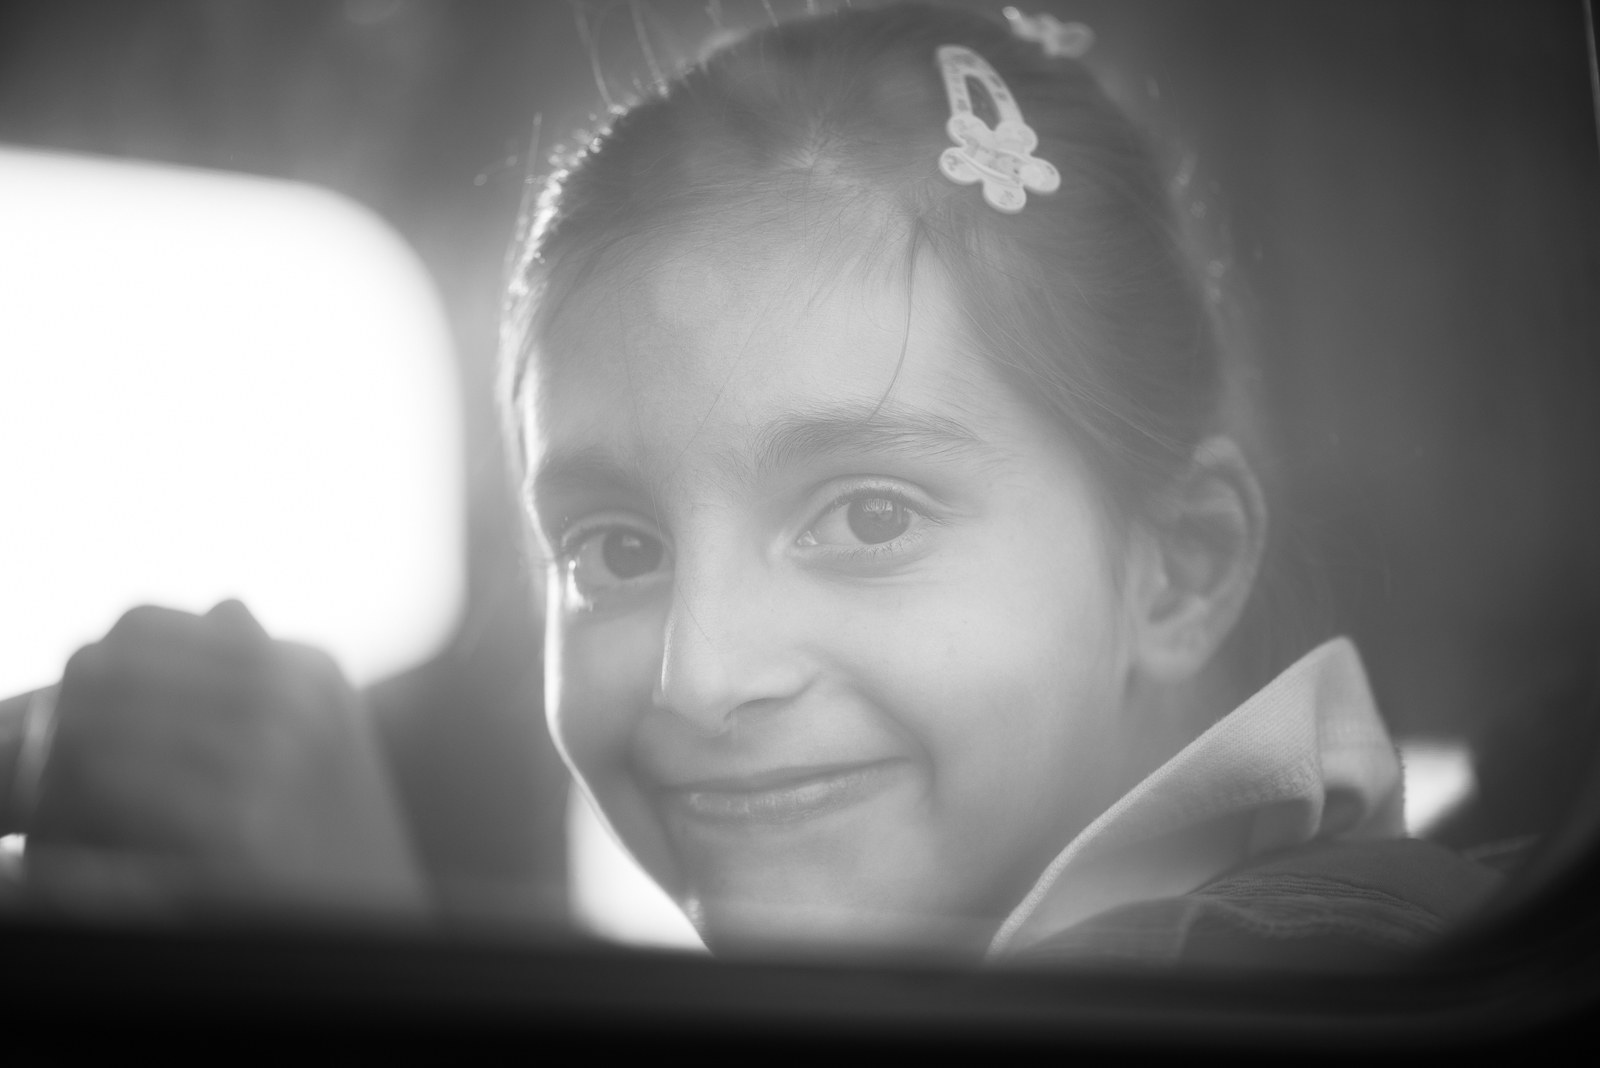 The gaze of a syrian little girl through the bus window